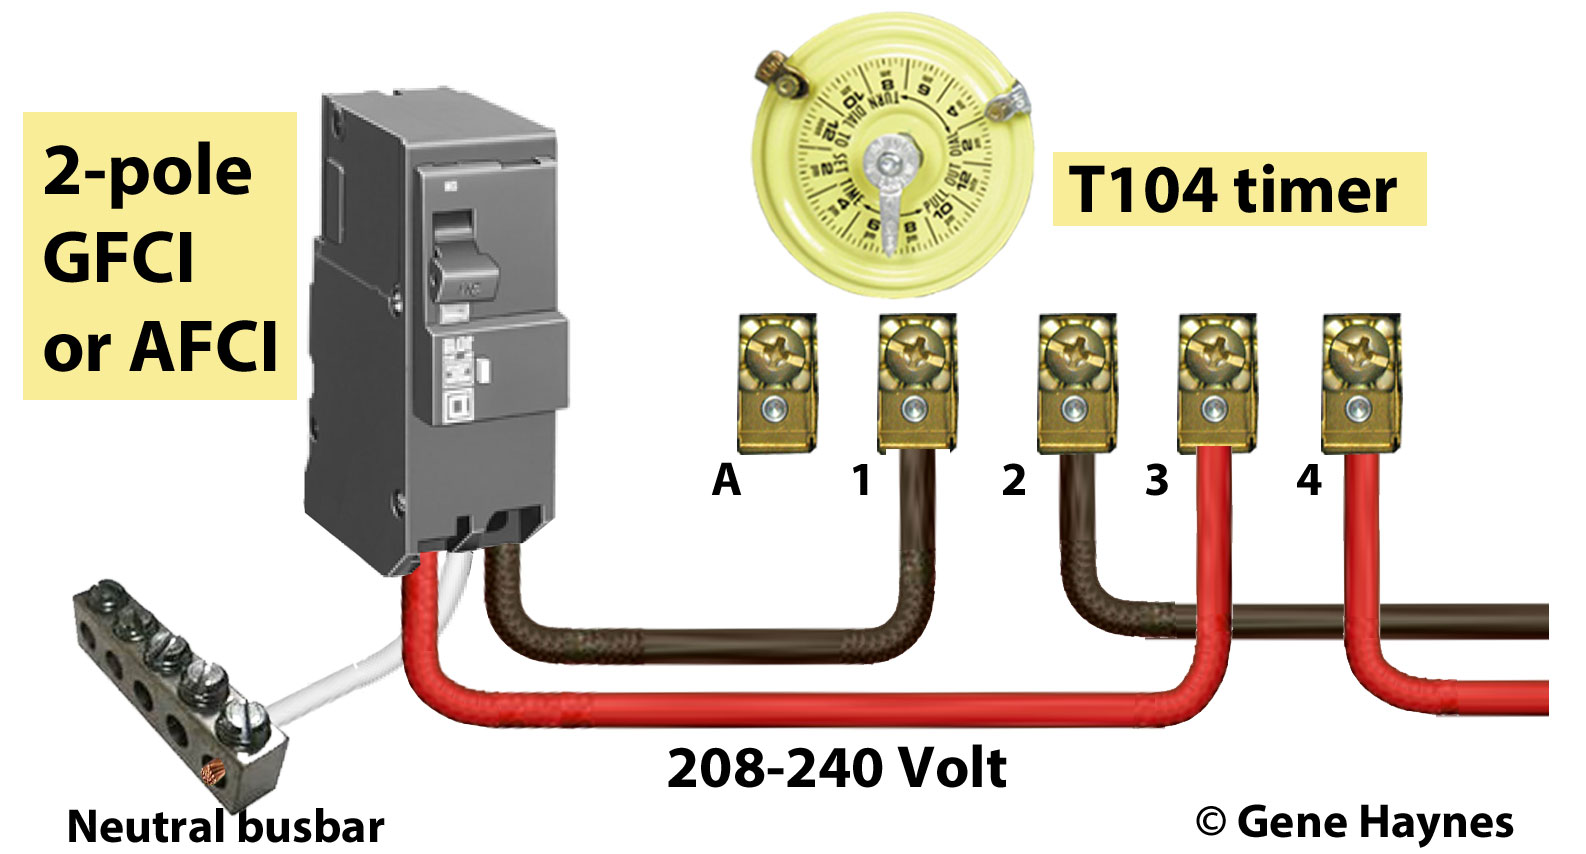 How To Install And Troubleshoot Gfci 208 Volt 3 Phase Receptacle Wiring Diagram Larger Image